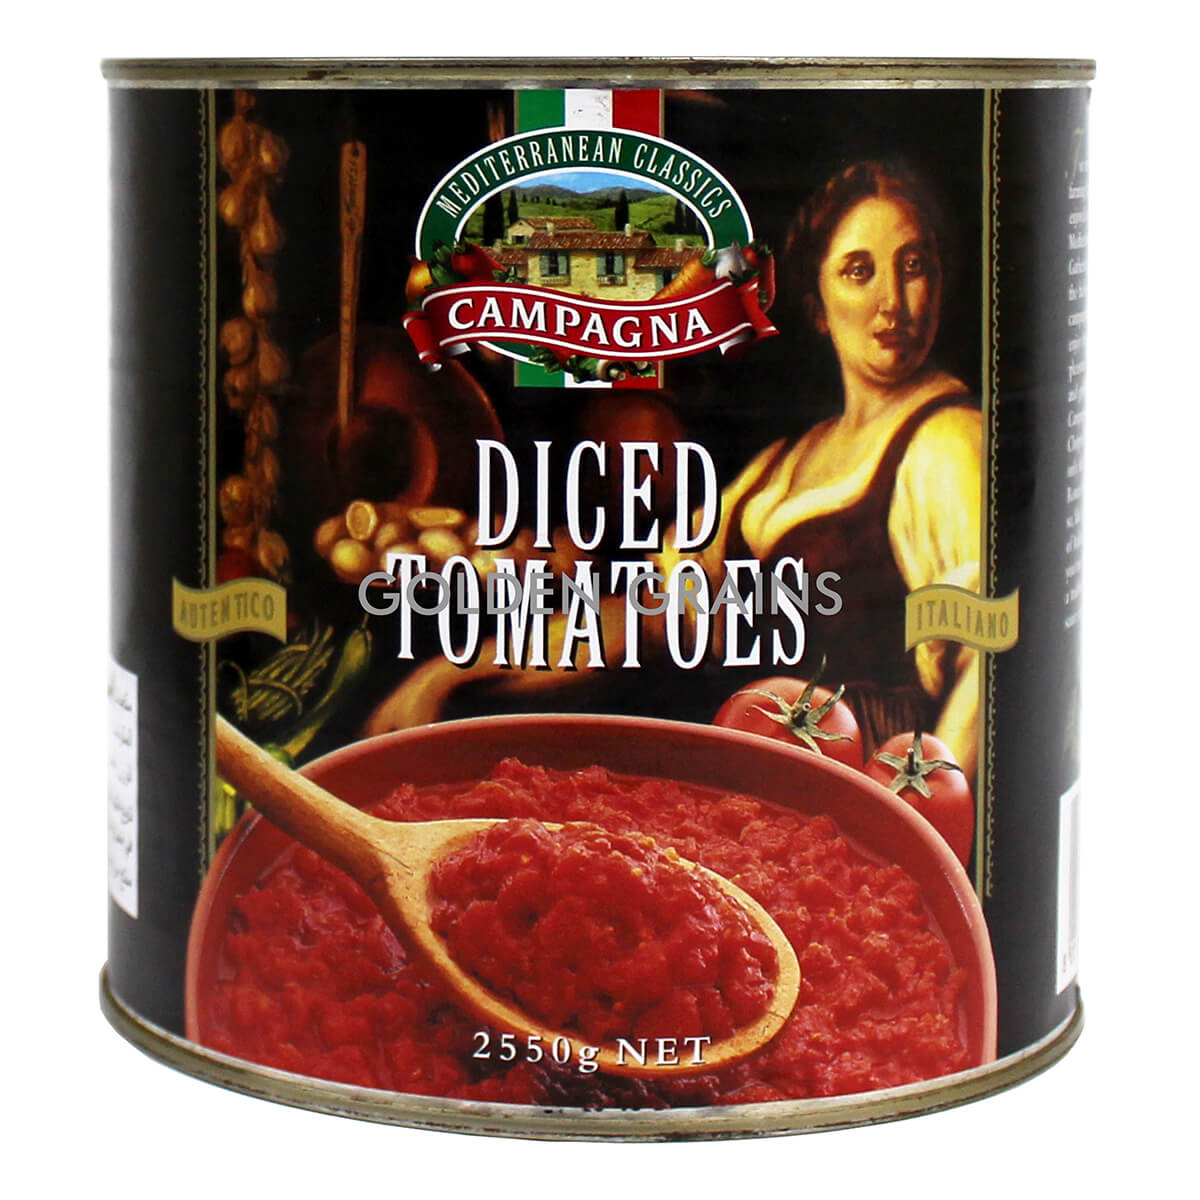 Golden Grains Dubai Export - Campagna - Diced Tomatoes - Front.jpg